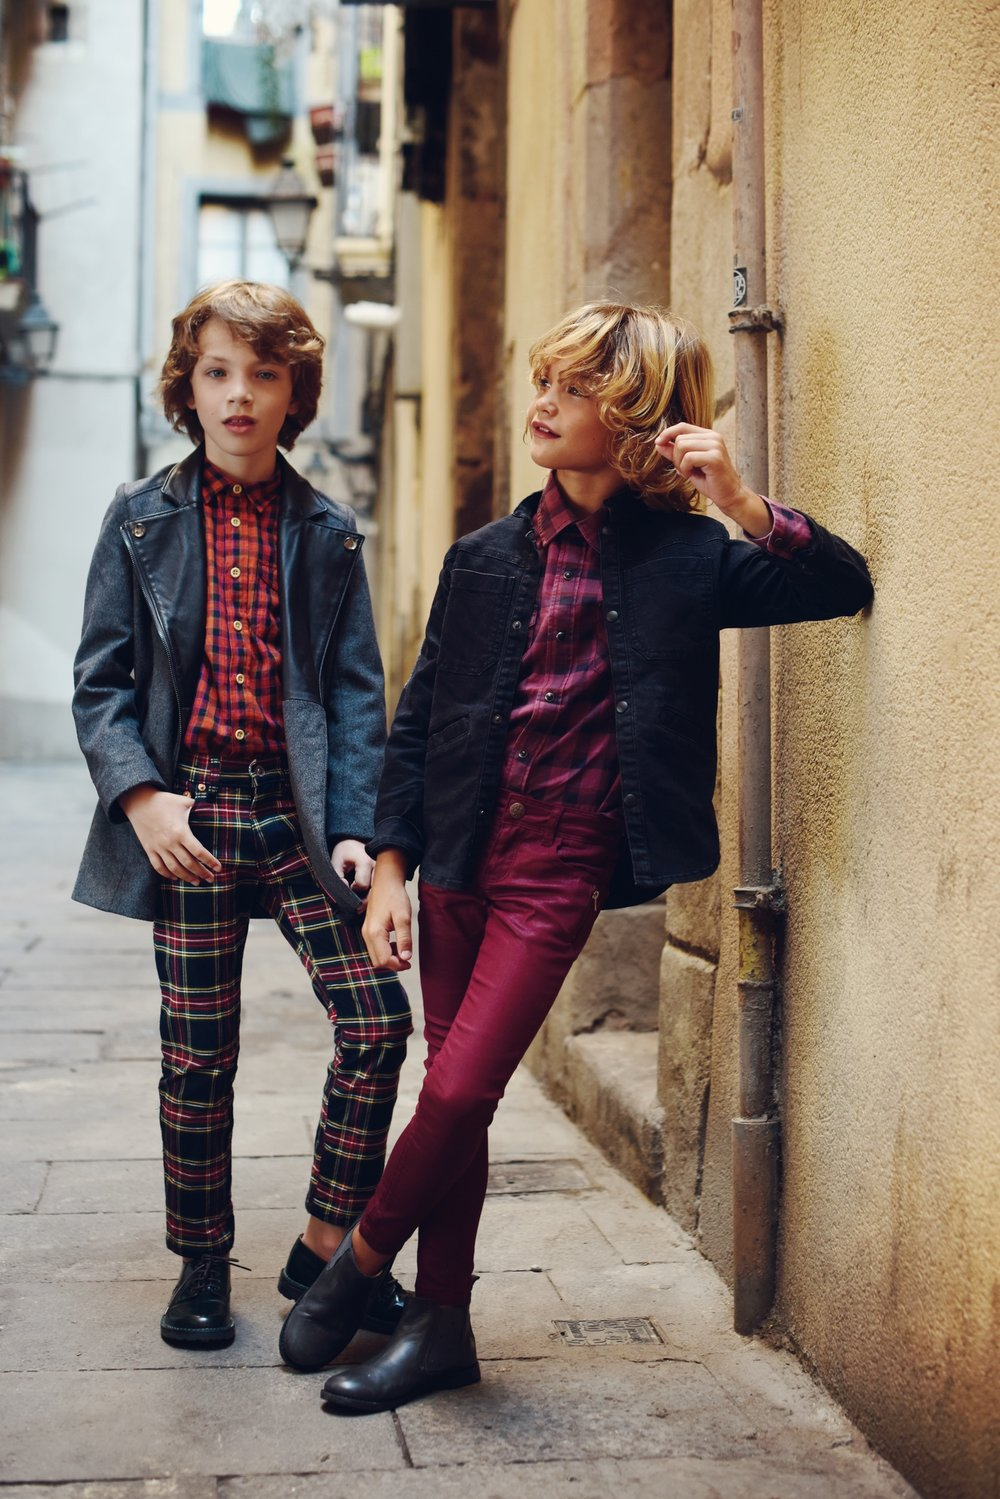 Enfant+Street+Style+by+Gina+Kim+Photography-4.jpeg